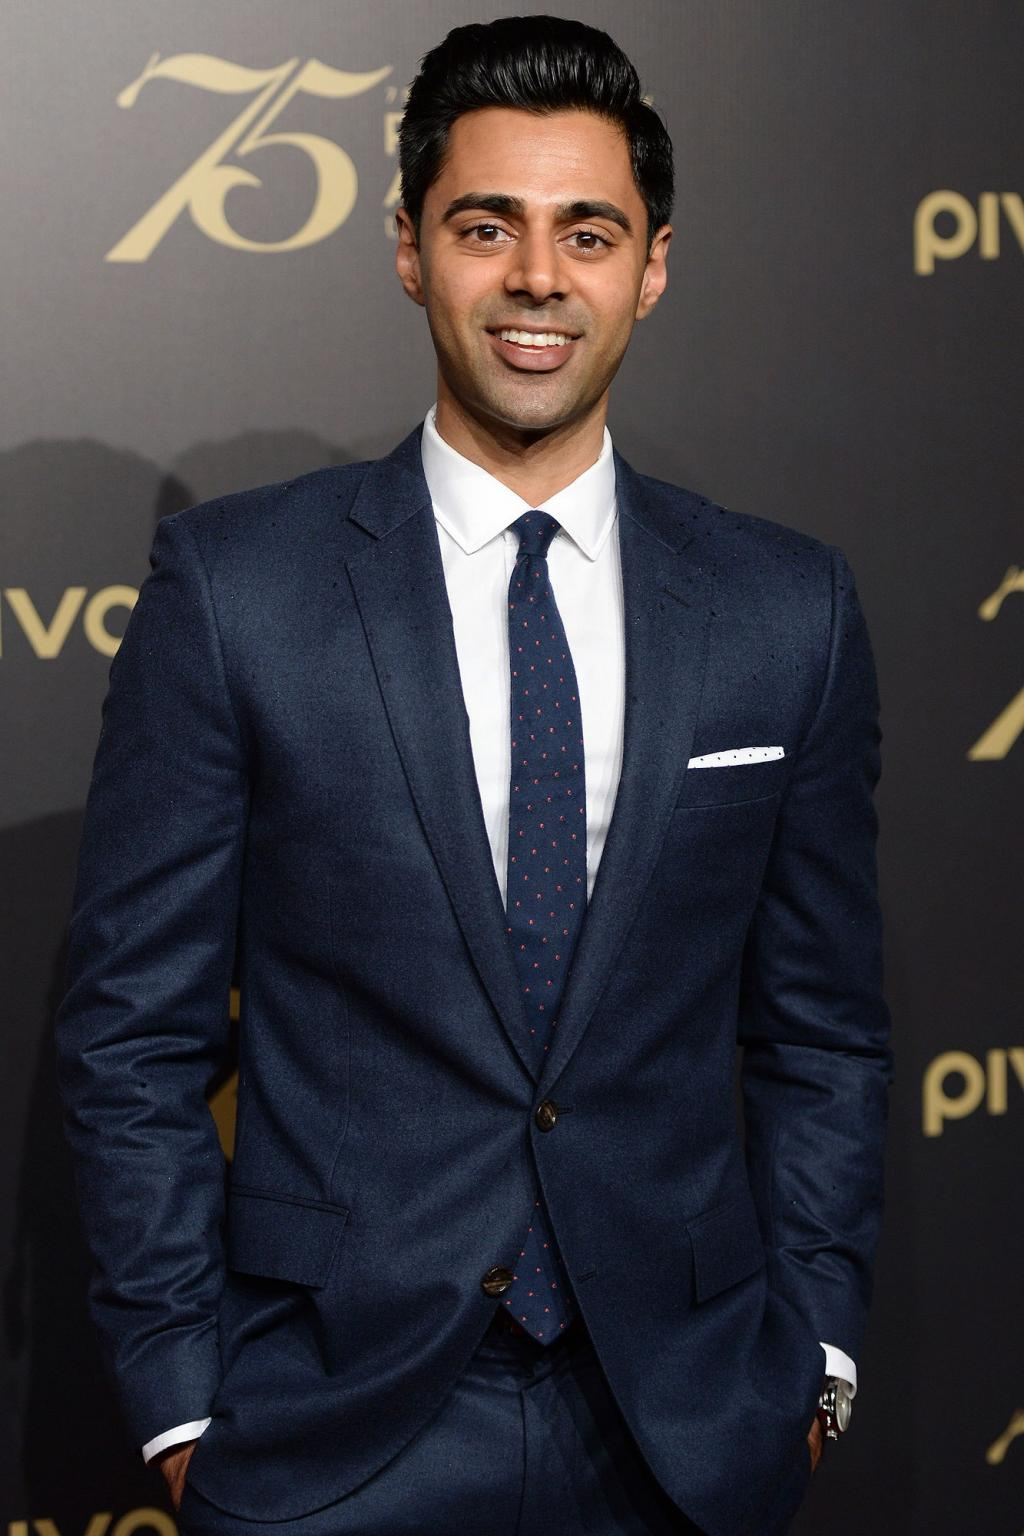 Comedian Hasan Minhaj Will Host the White House Correspondents      '  Dinner